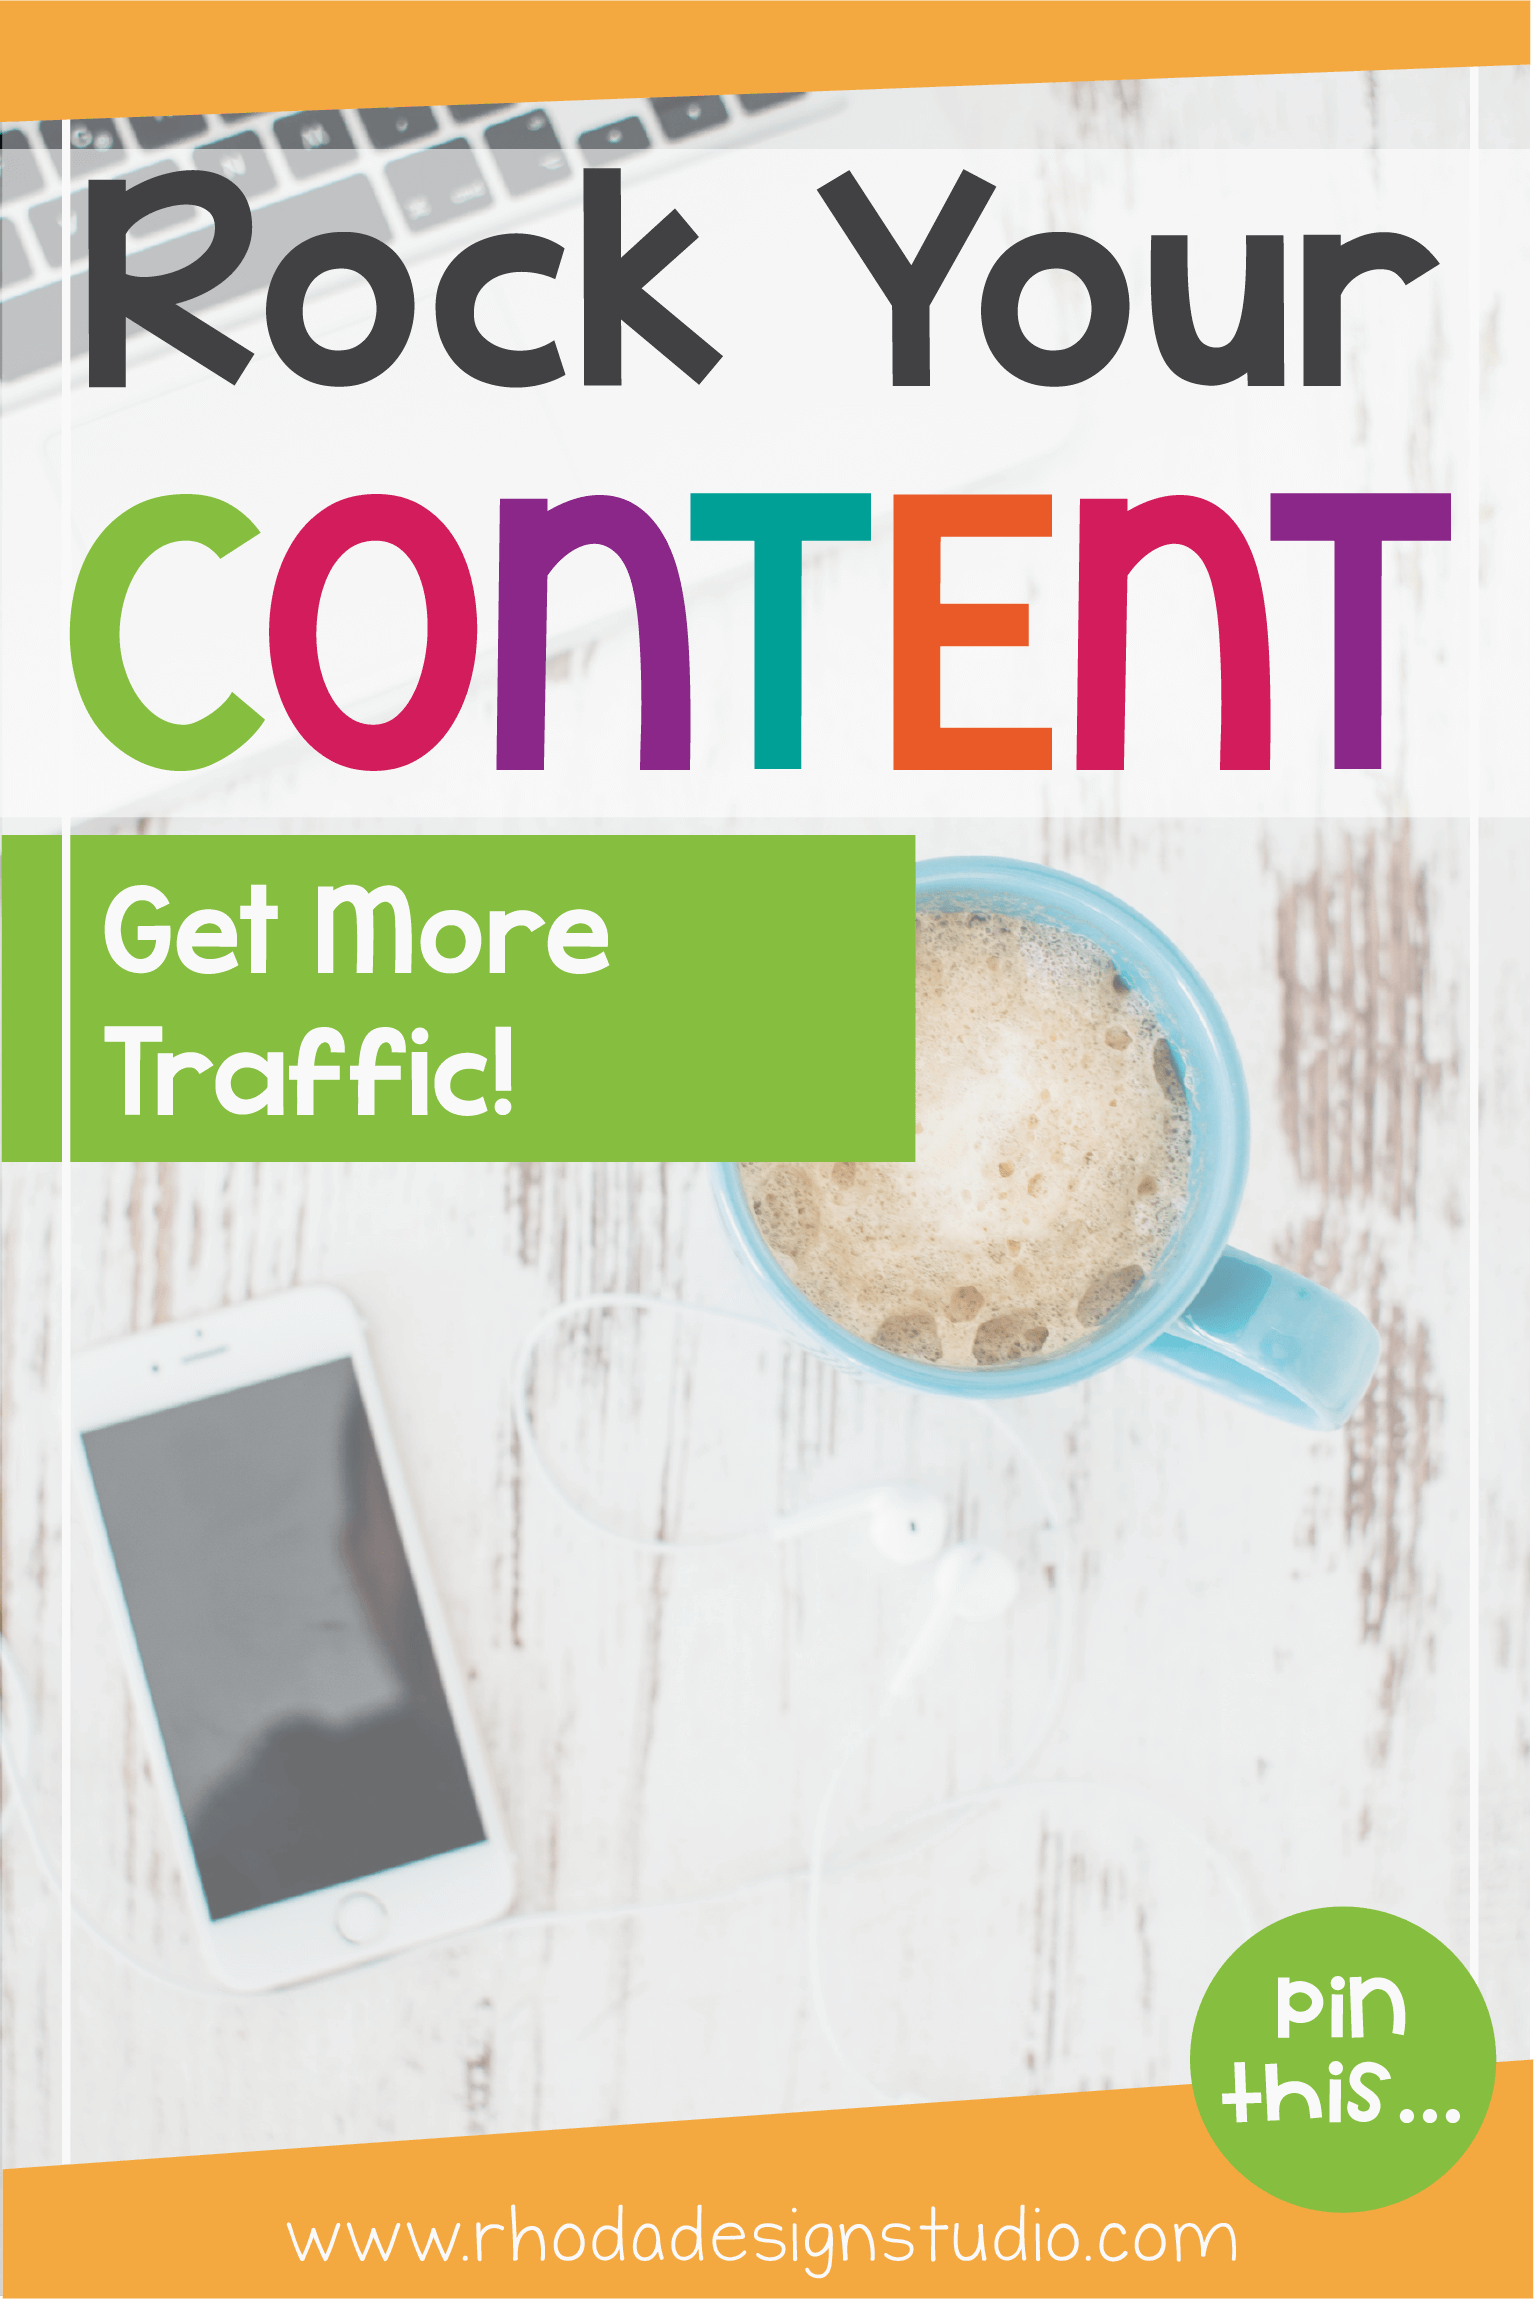 How to rock your content marketing. What do you need to help drive traffic to your website or online business? Visit the blog for the fun infographic.